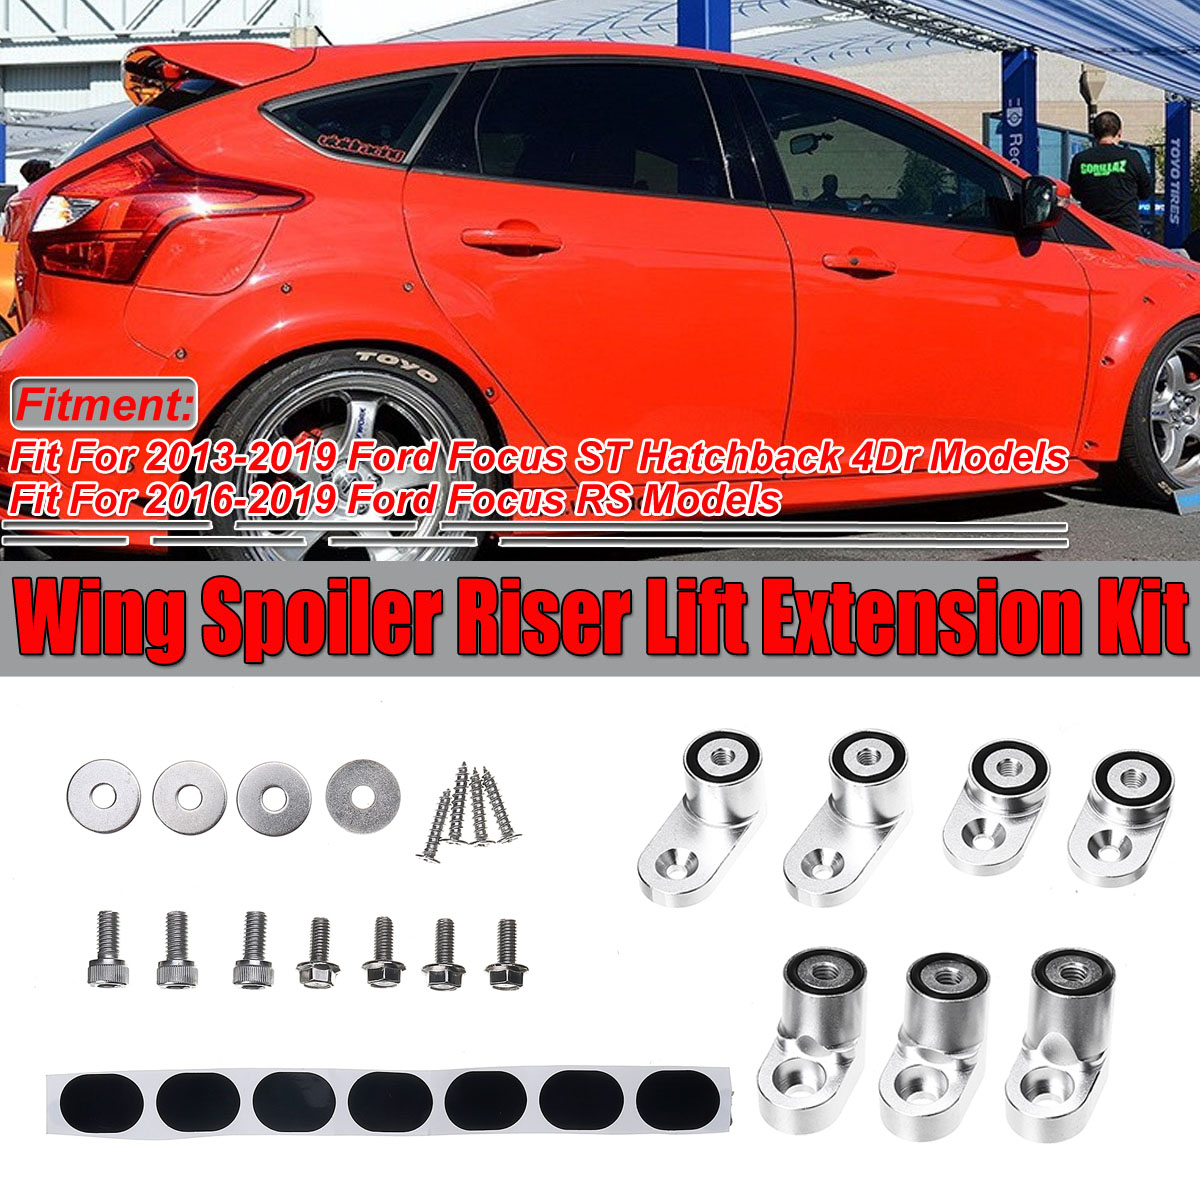 Race Red Painted Rear Roof Spoiler Wing Lip Fit for Ford Focus Hatchback 12-13